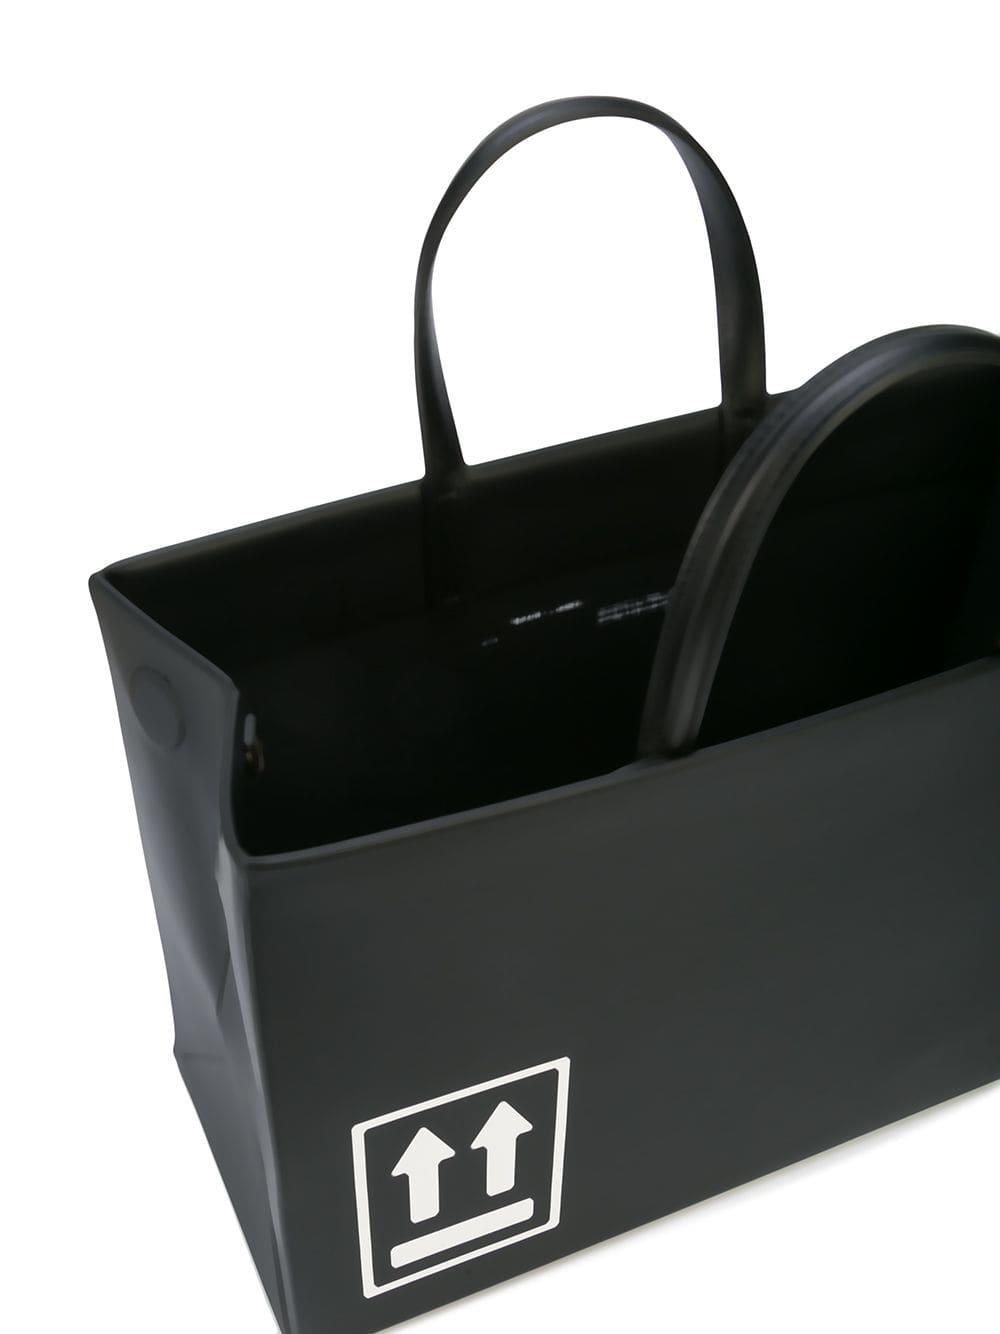 7a997f303060 Virgil Abloh - Owna058f184800761001 1001 Black White Synthetic-. View  fullscreen cheap  Lyst - Off-White CO ...